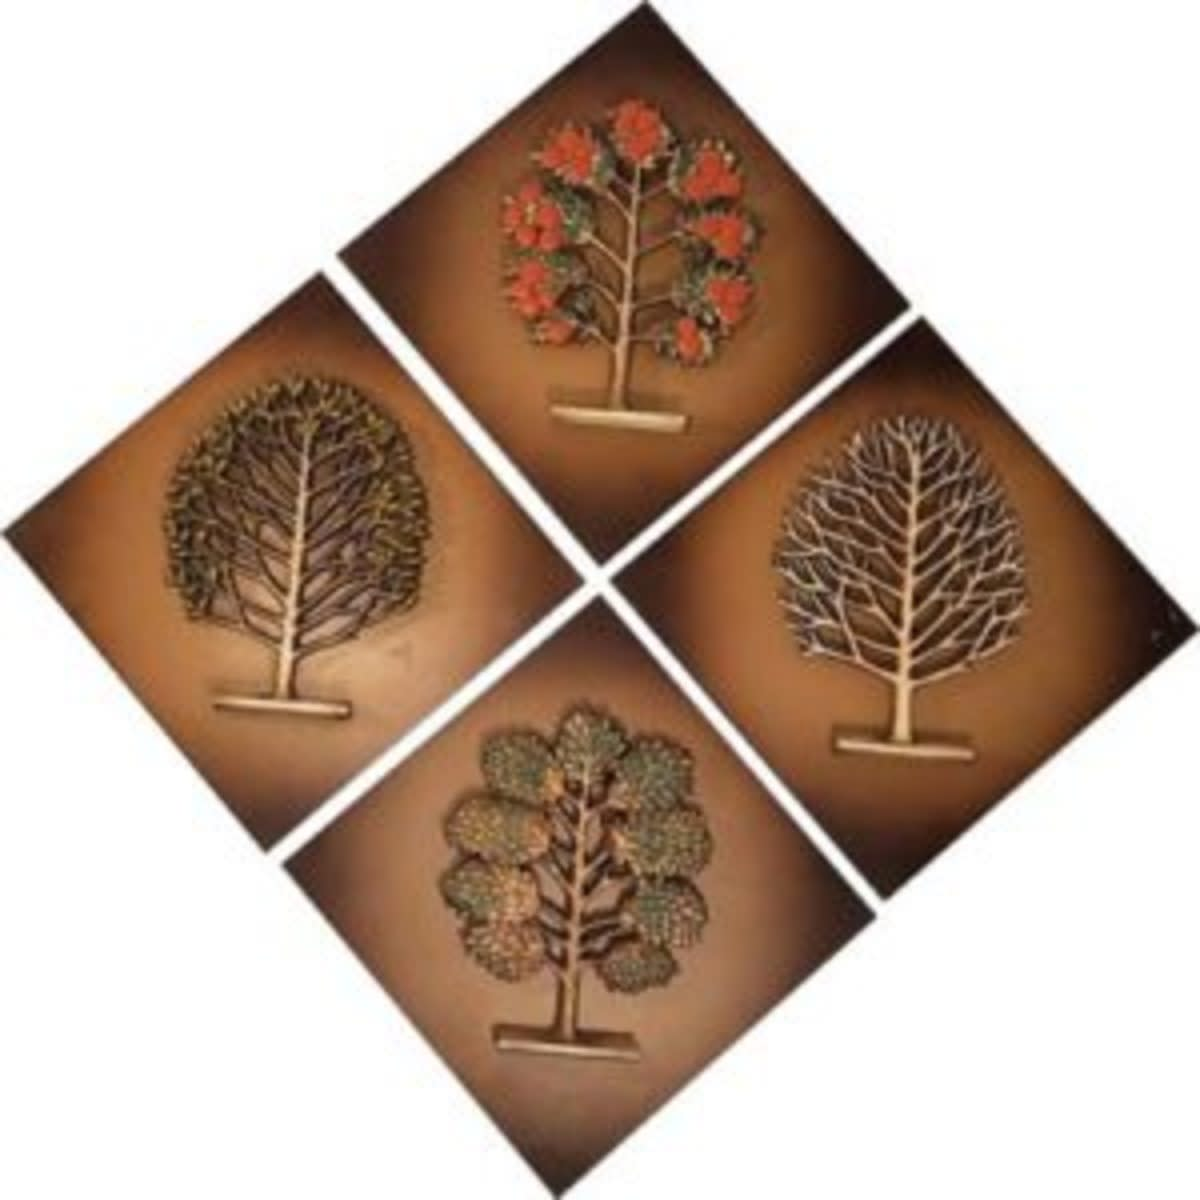 This set of four mid-century Syroco® plaques depict the four seasons. Each diamond-shaped plaque features a tree that represents one of the seasons.